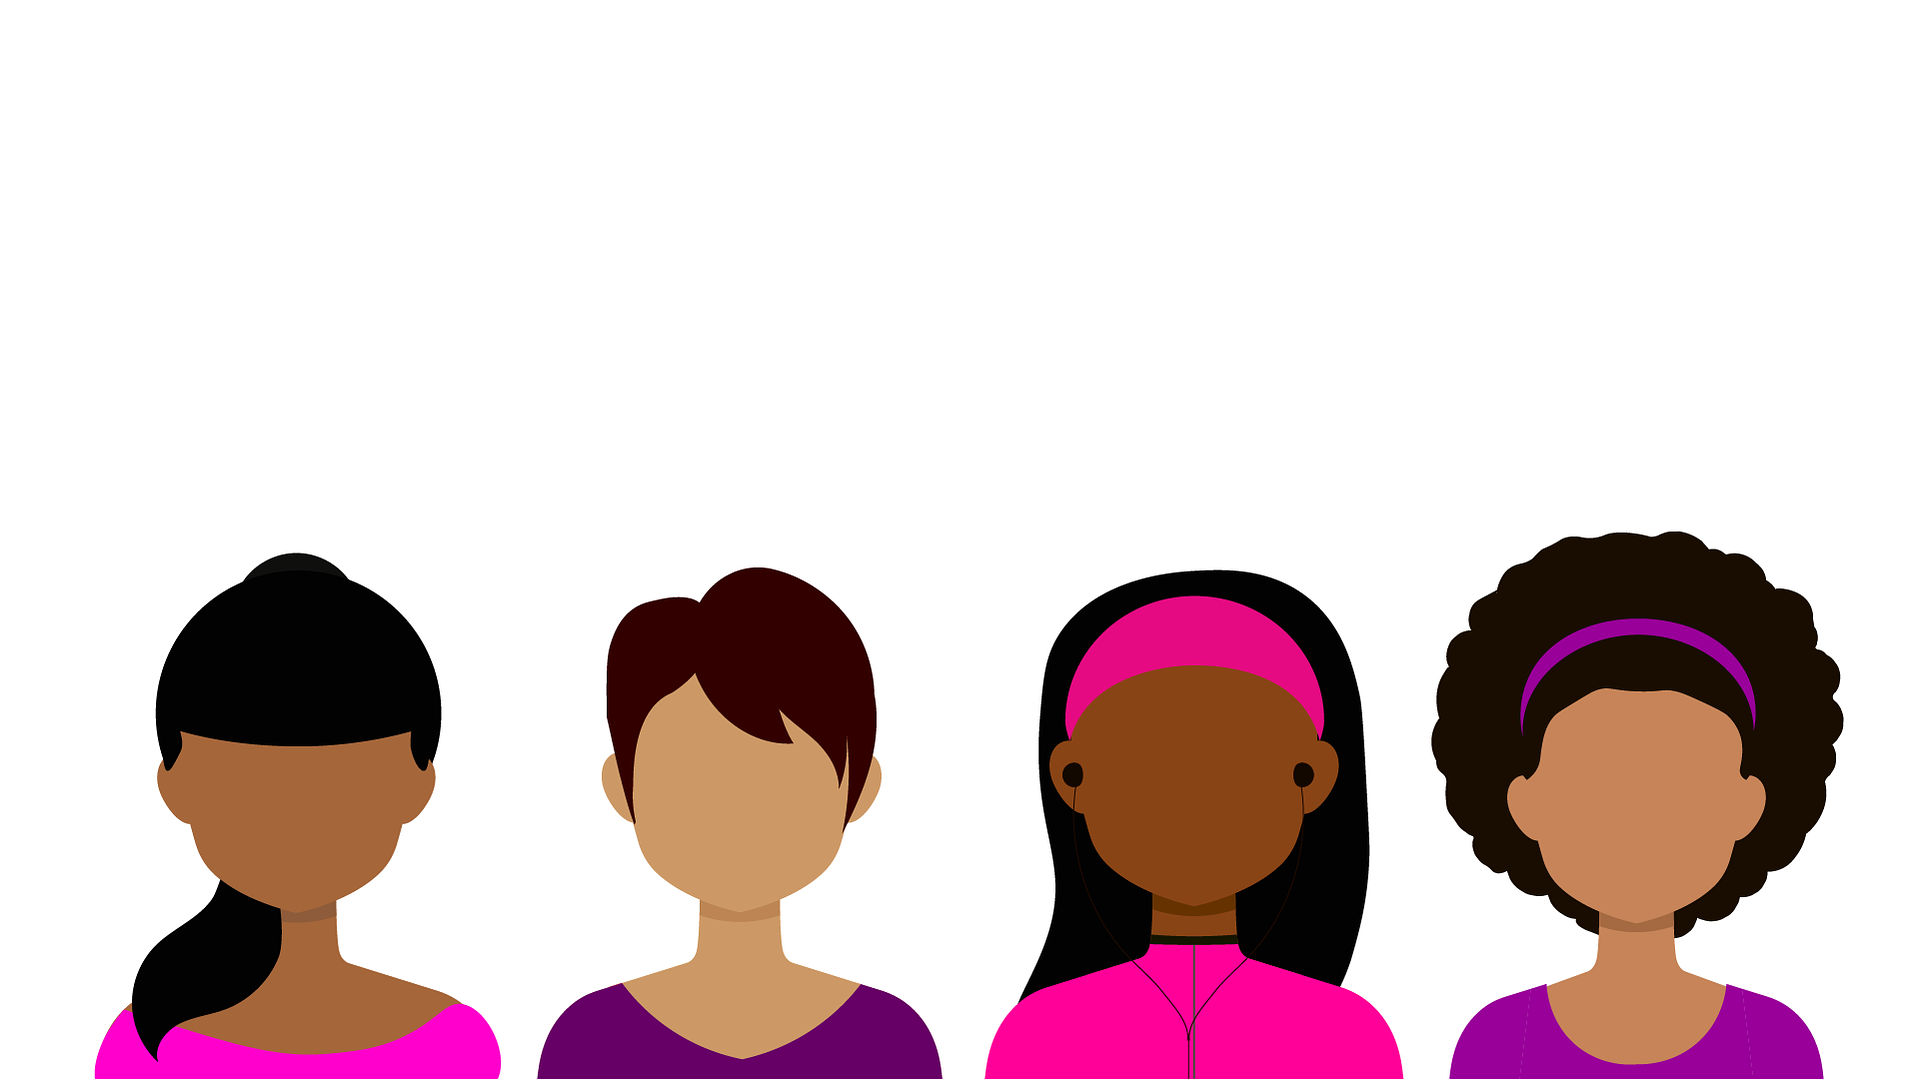 Illustration of four women of different ethnicity wearing pink and purple tops